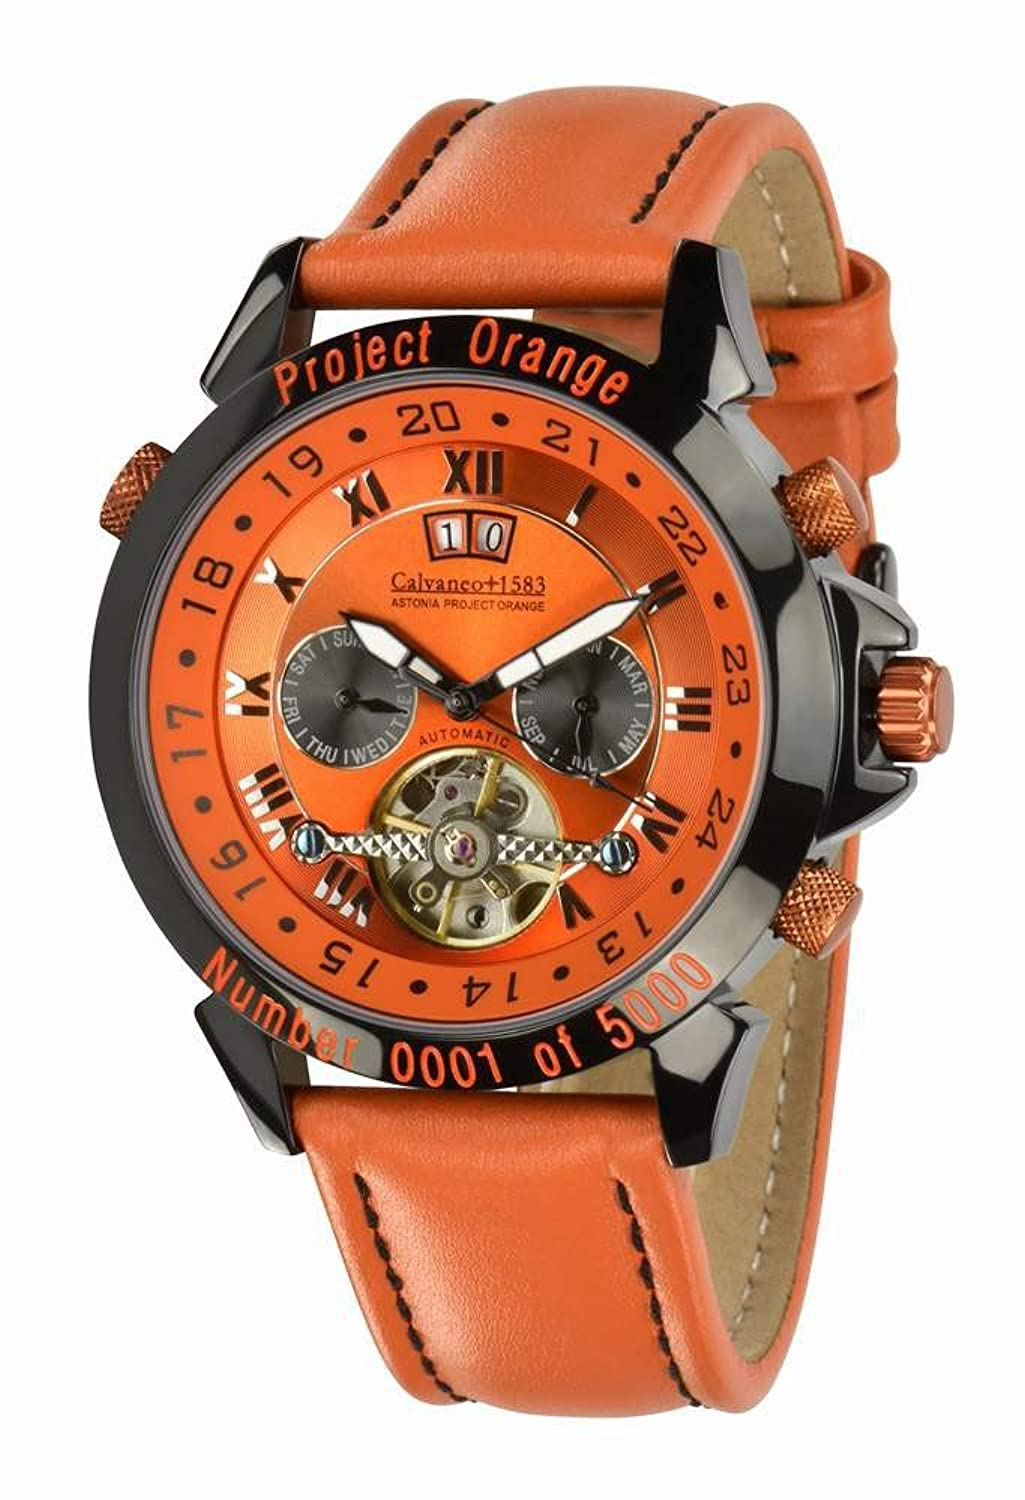 Astonia 'Project Orange Edition' - Sonderedition Automatik - Calvaneo 1583